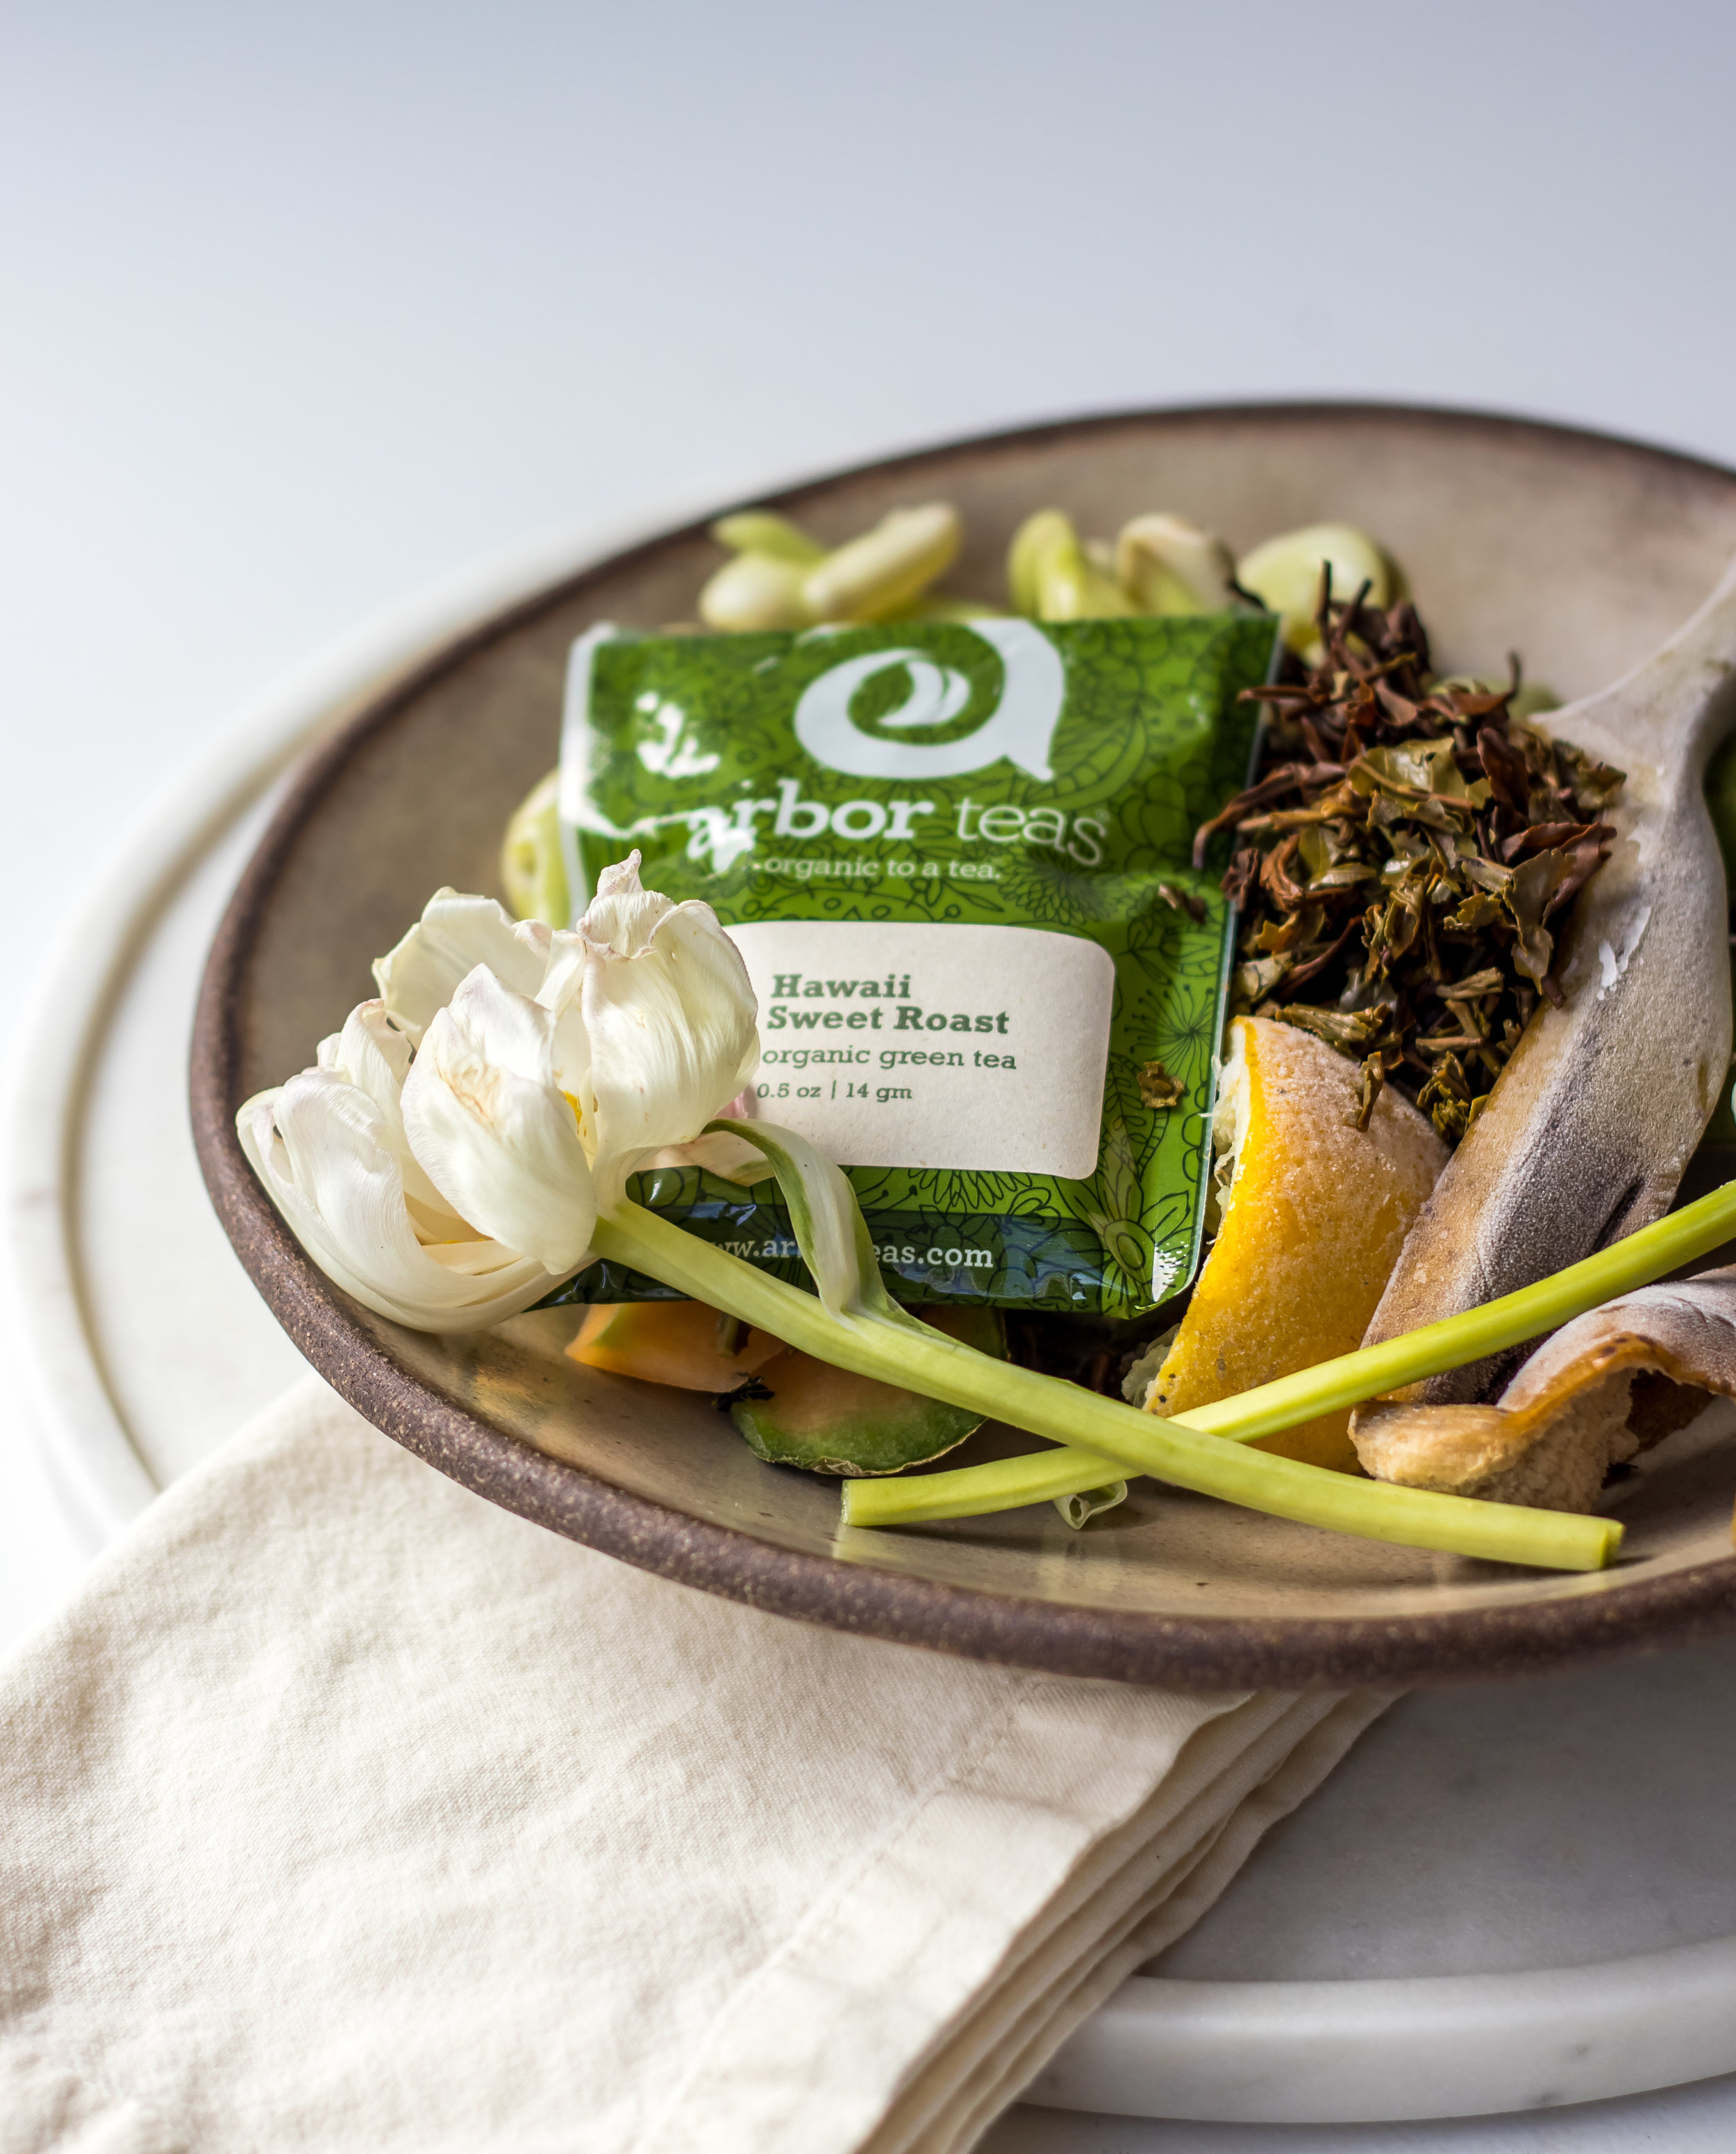 Arbor Teas packaging is backyard compostable, even the labels!